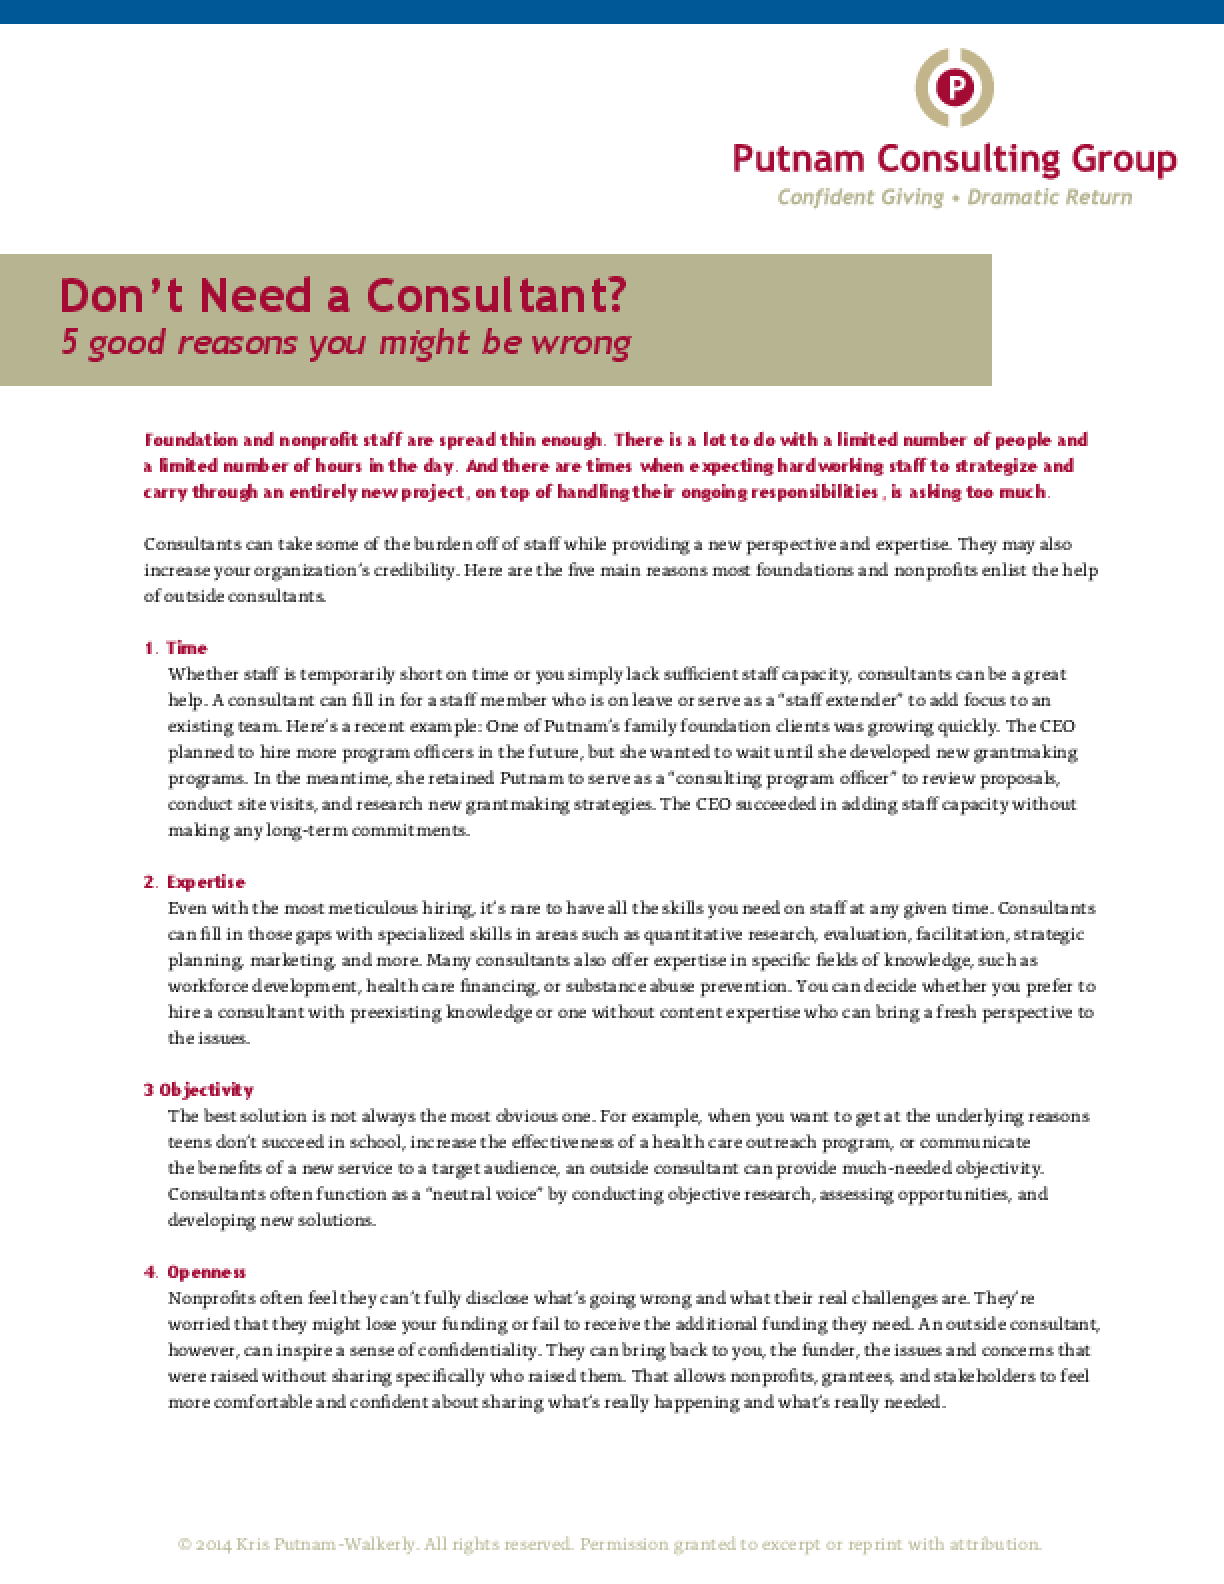 Don't Need a Consultant?: 5 Good Reasons You Might Be Wrong